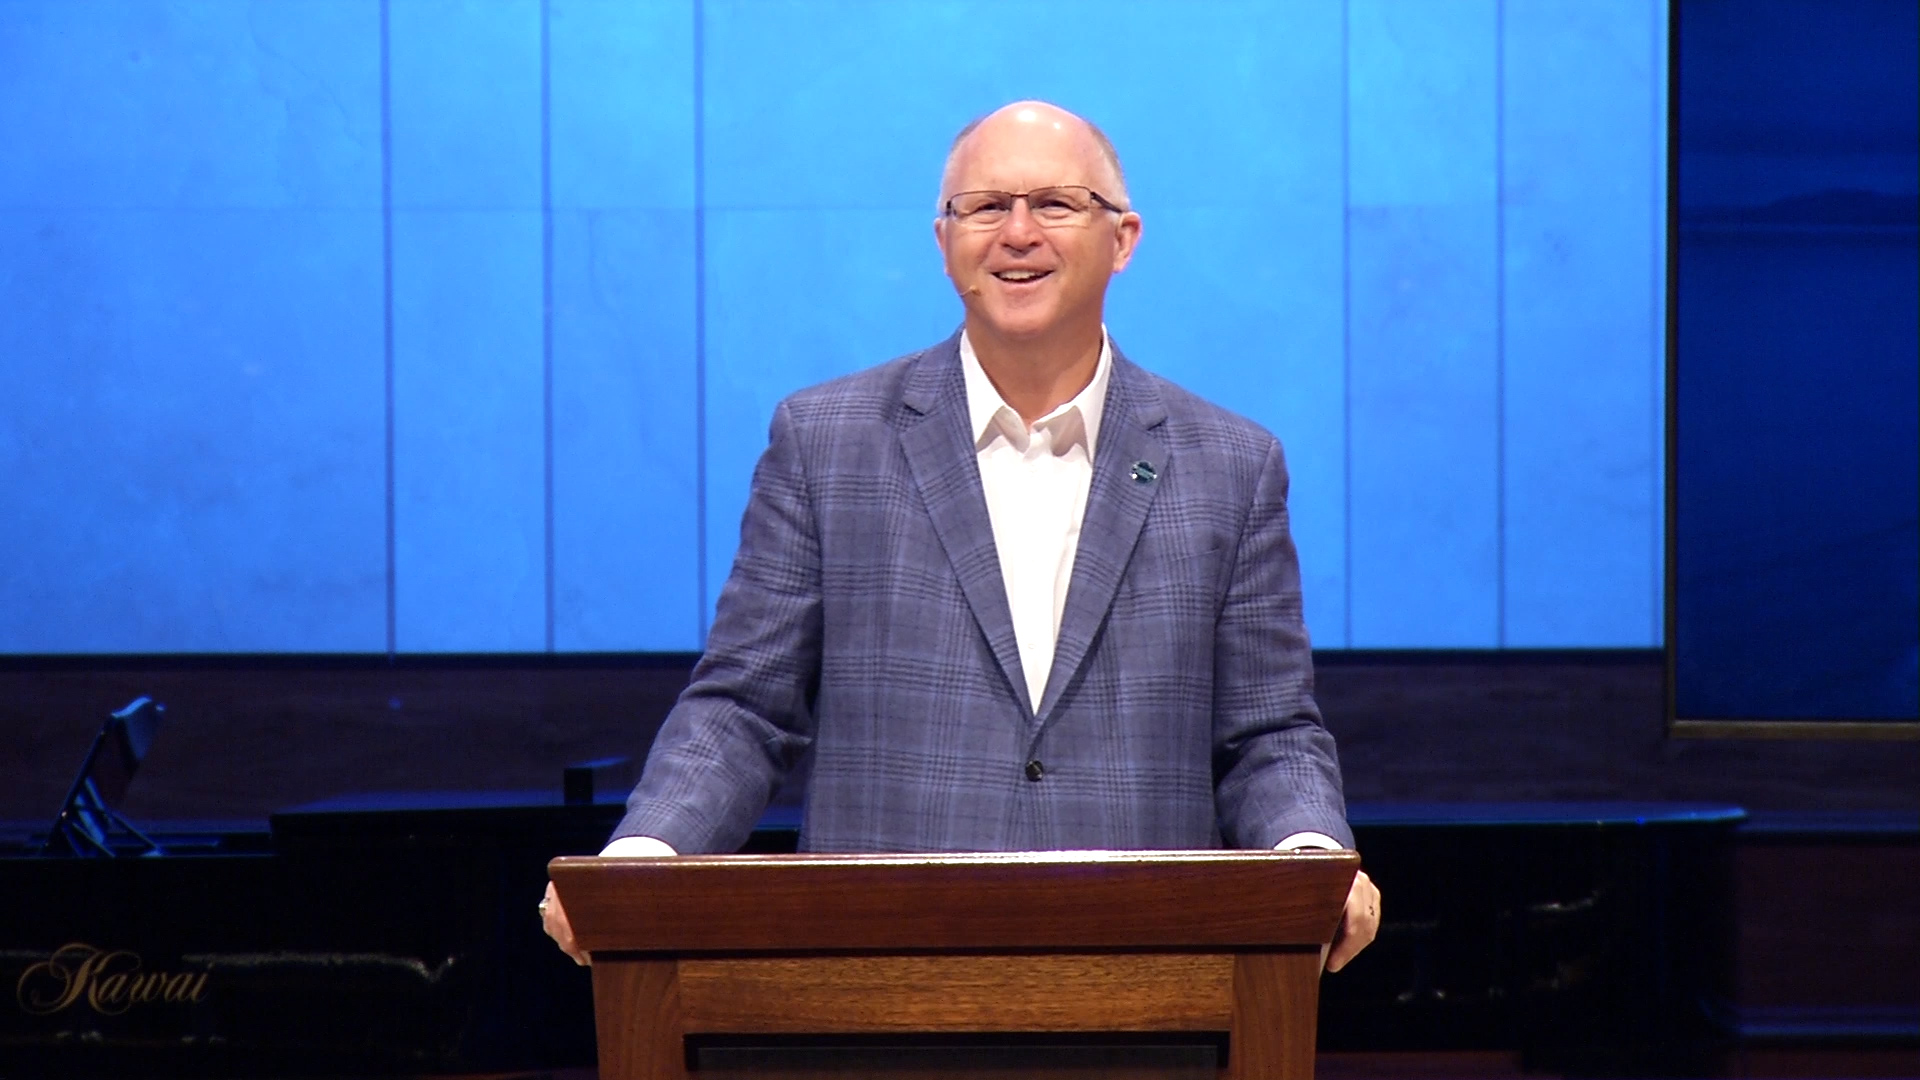 Pastor Paul Chappell: How to Abound Over Life's Pressures